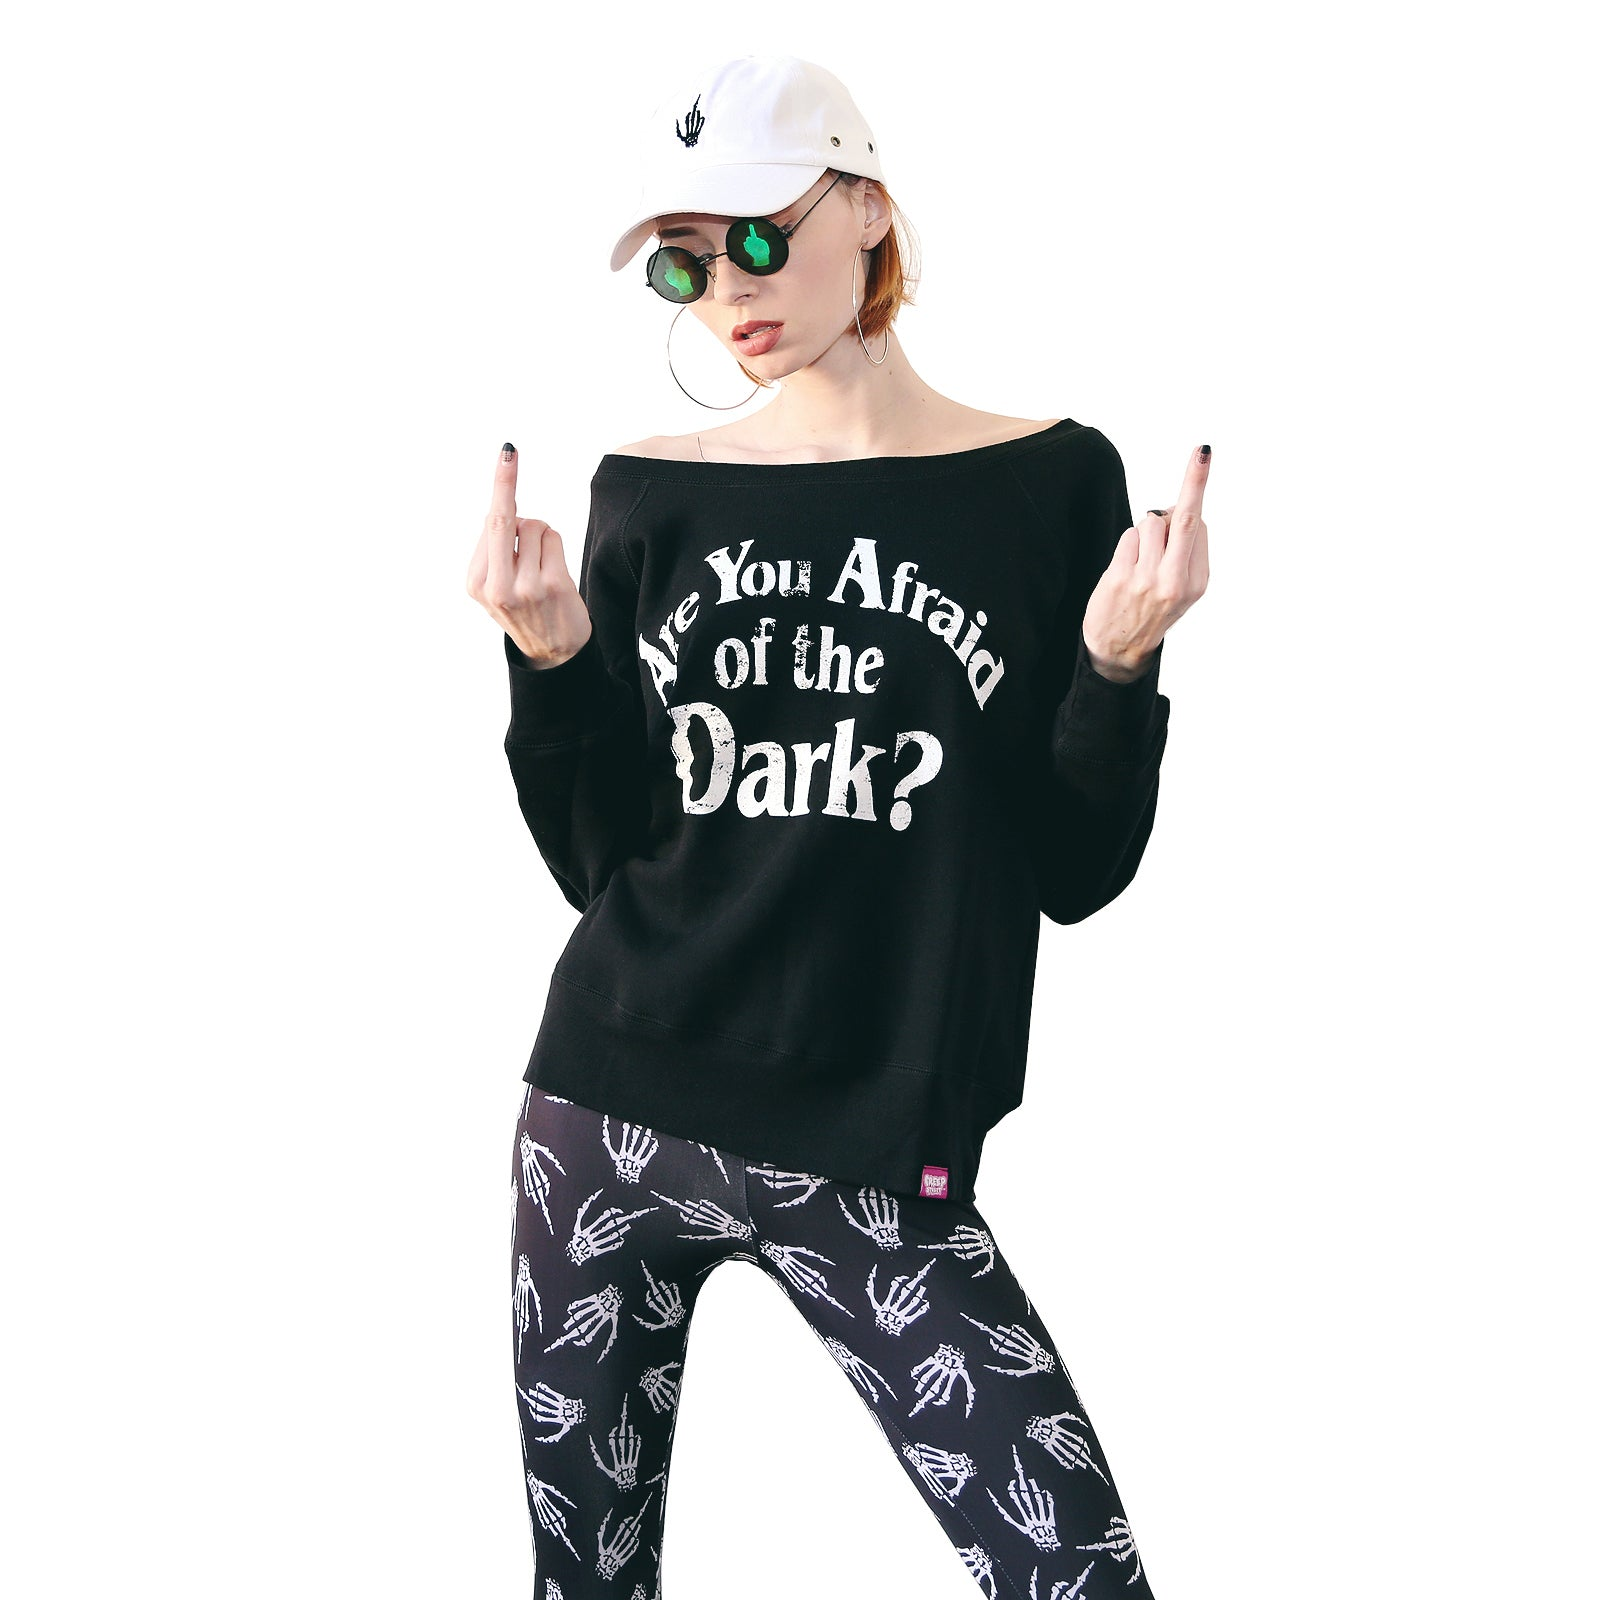 DARKNESS PULLOVER